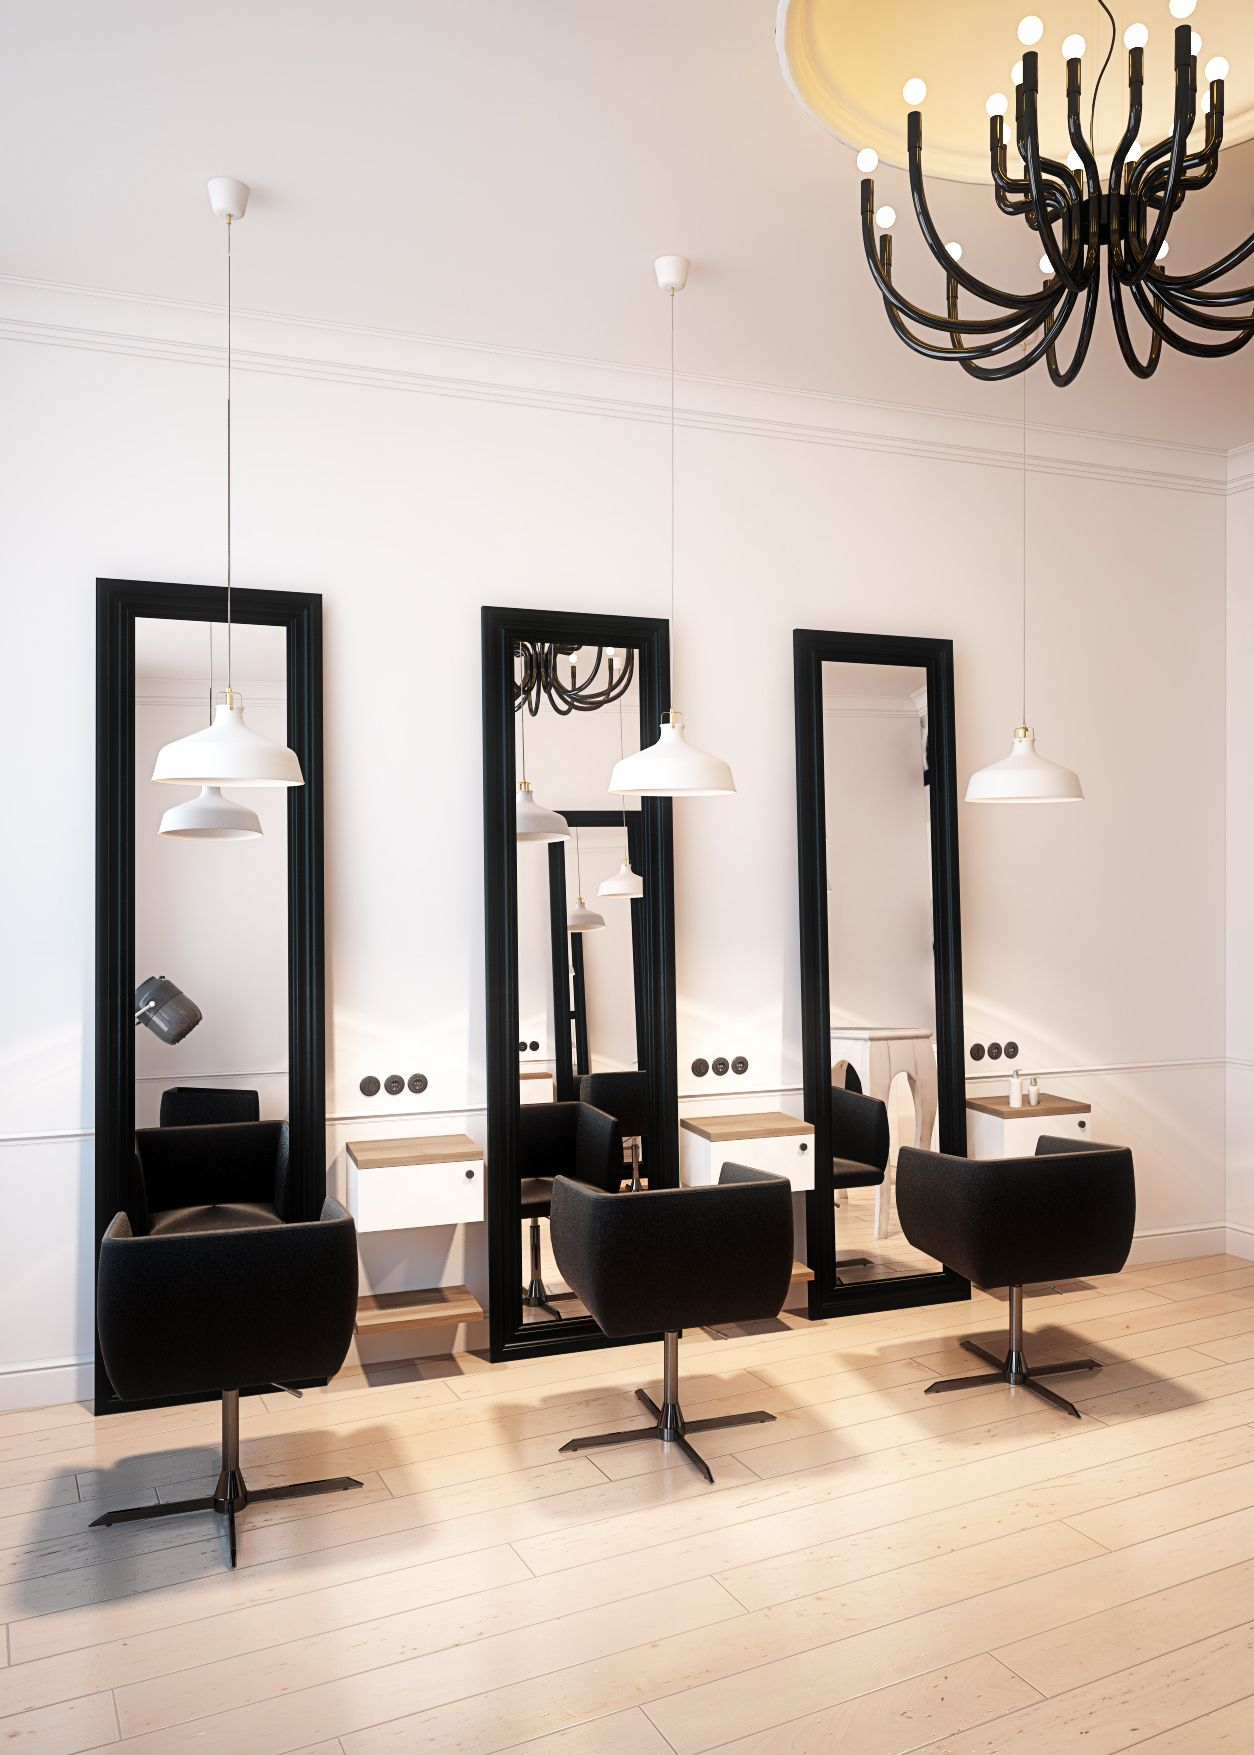 Hairdresser interior design in bytom poland archi group for Interior design for salon